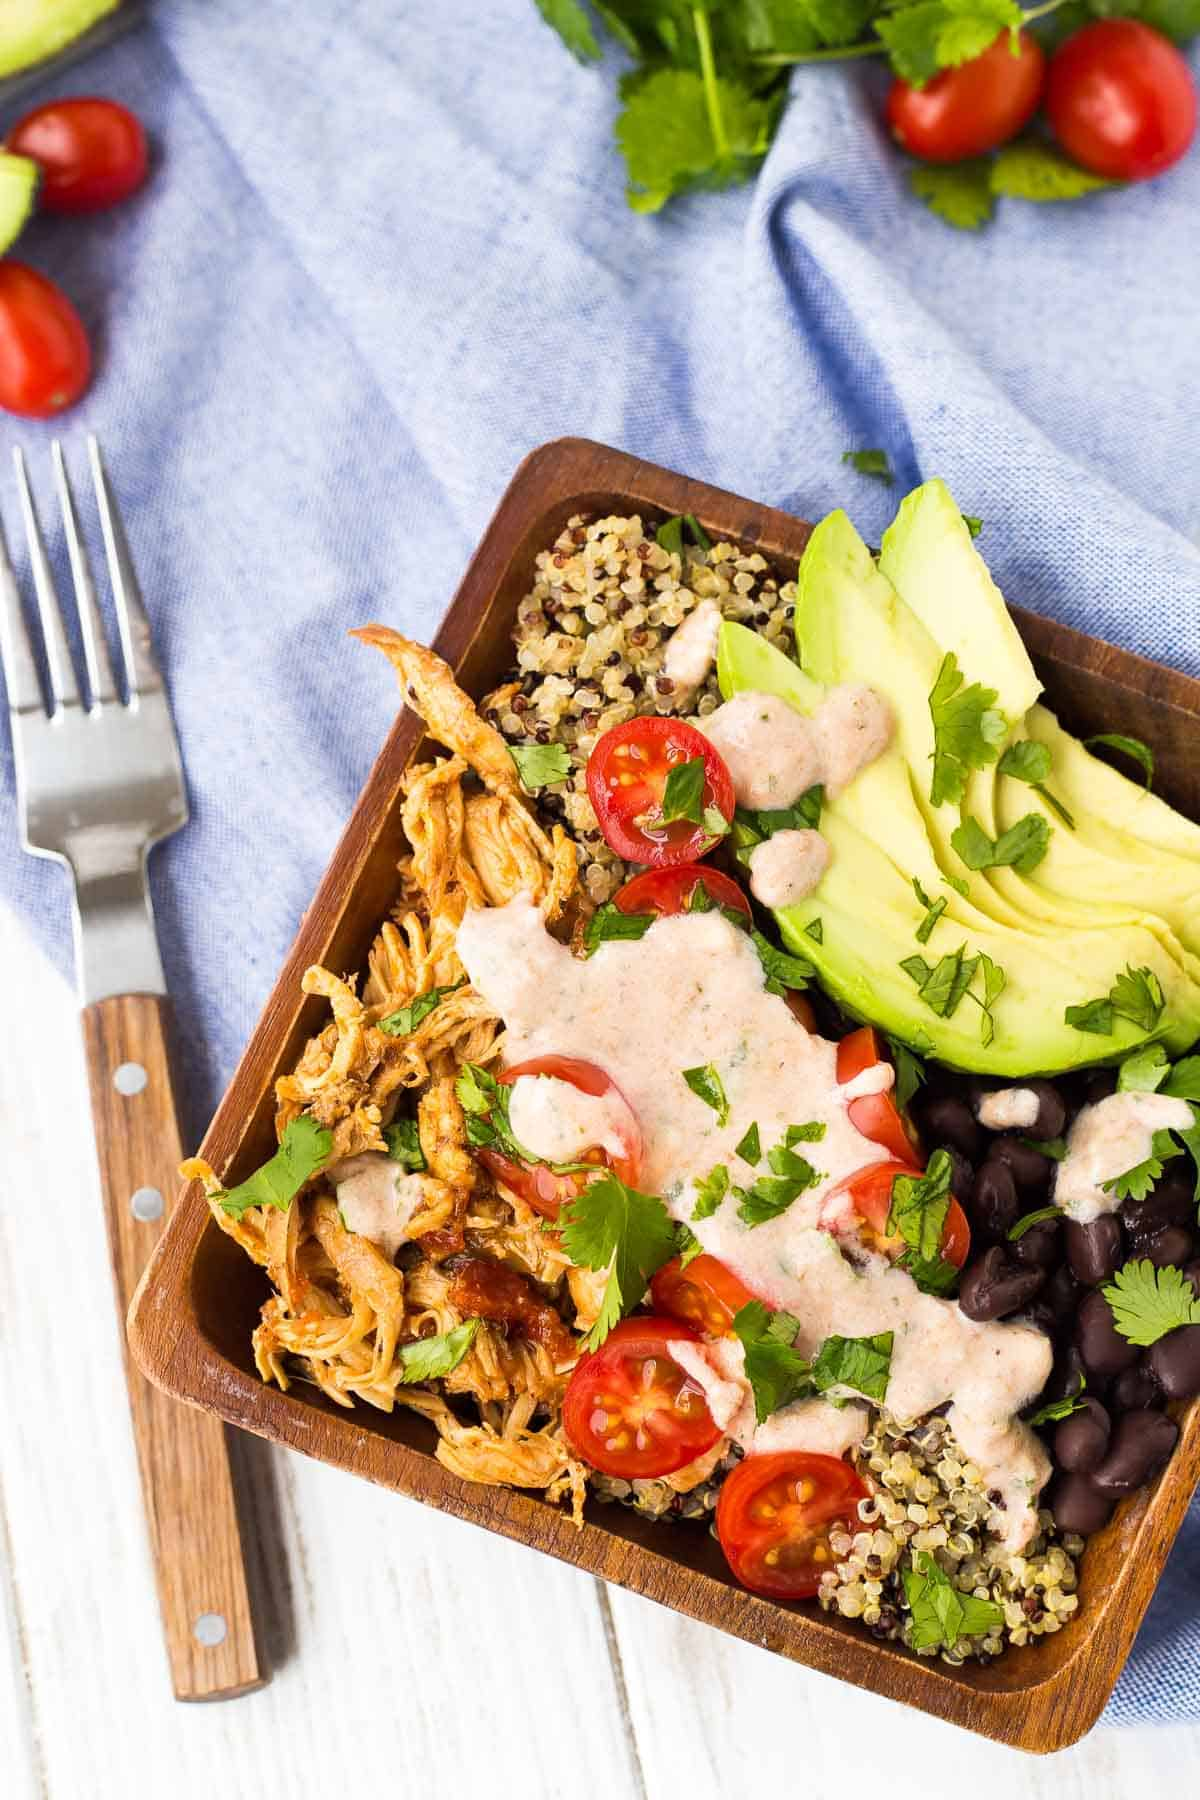 Overhead of southwestern quinoa bowl in square wooden bowl, with fork alongside.